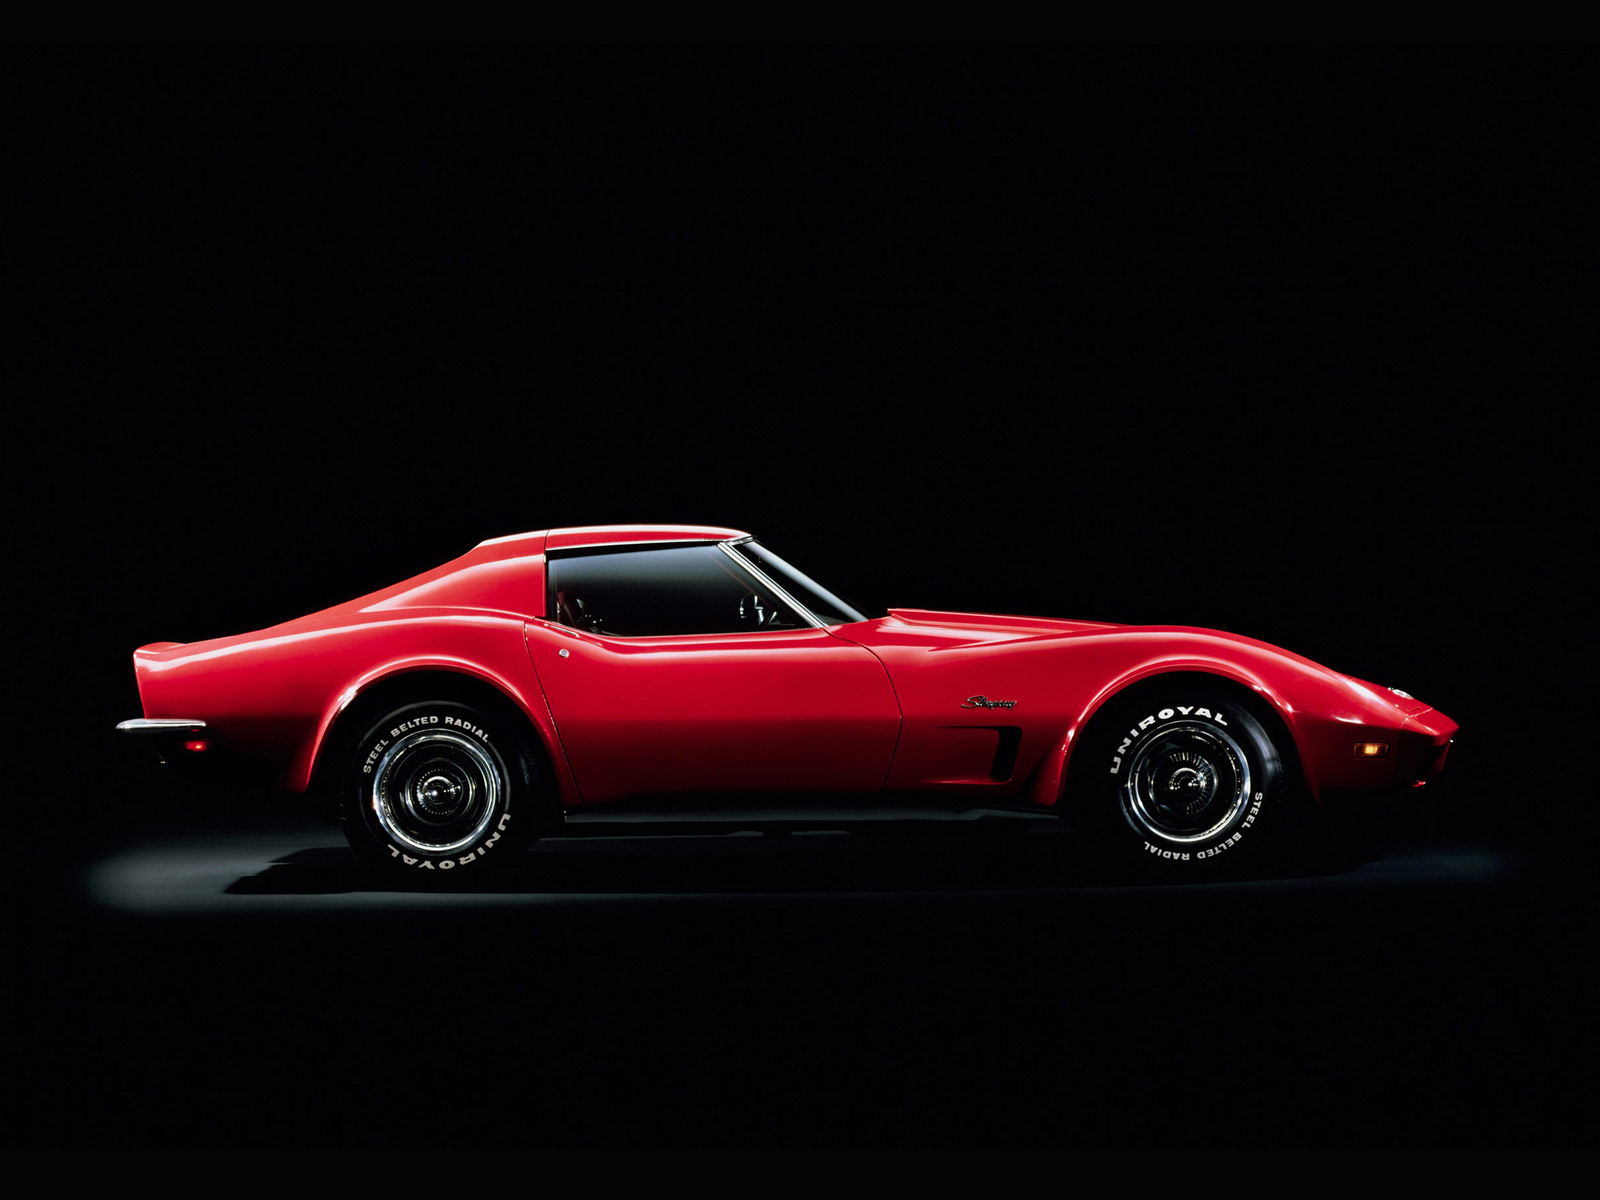 Corvettes The Dream On Pinterest Corvettes Chevrolet